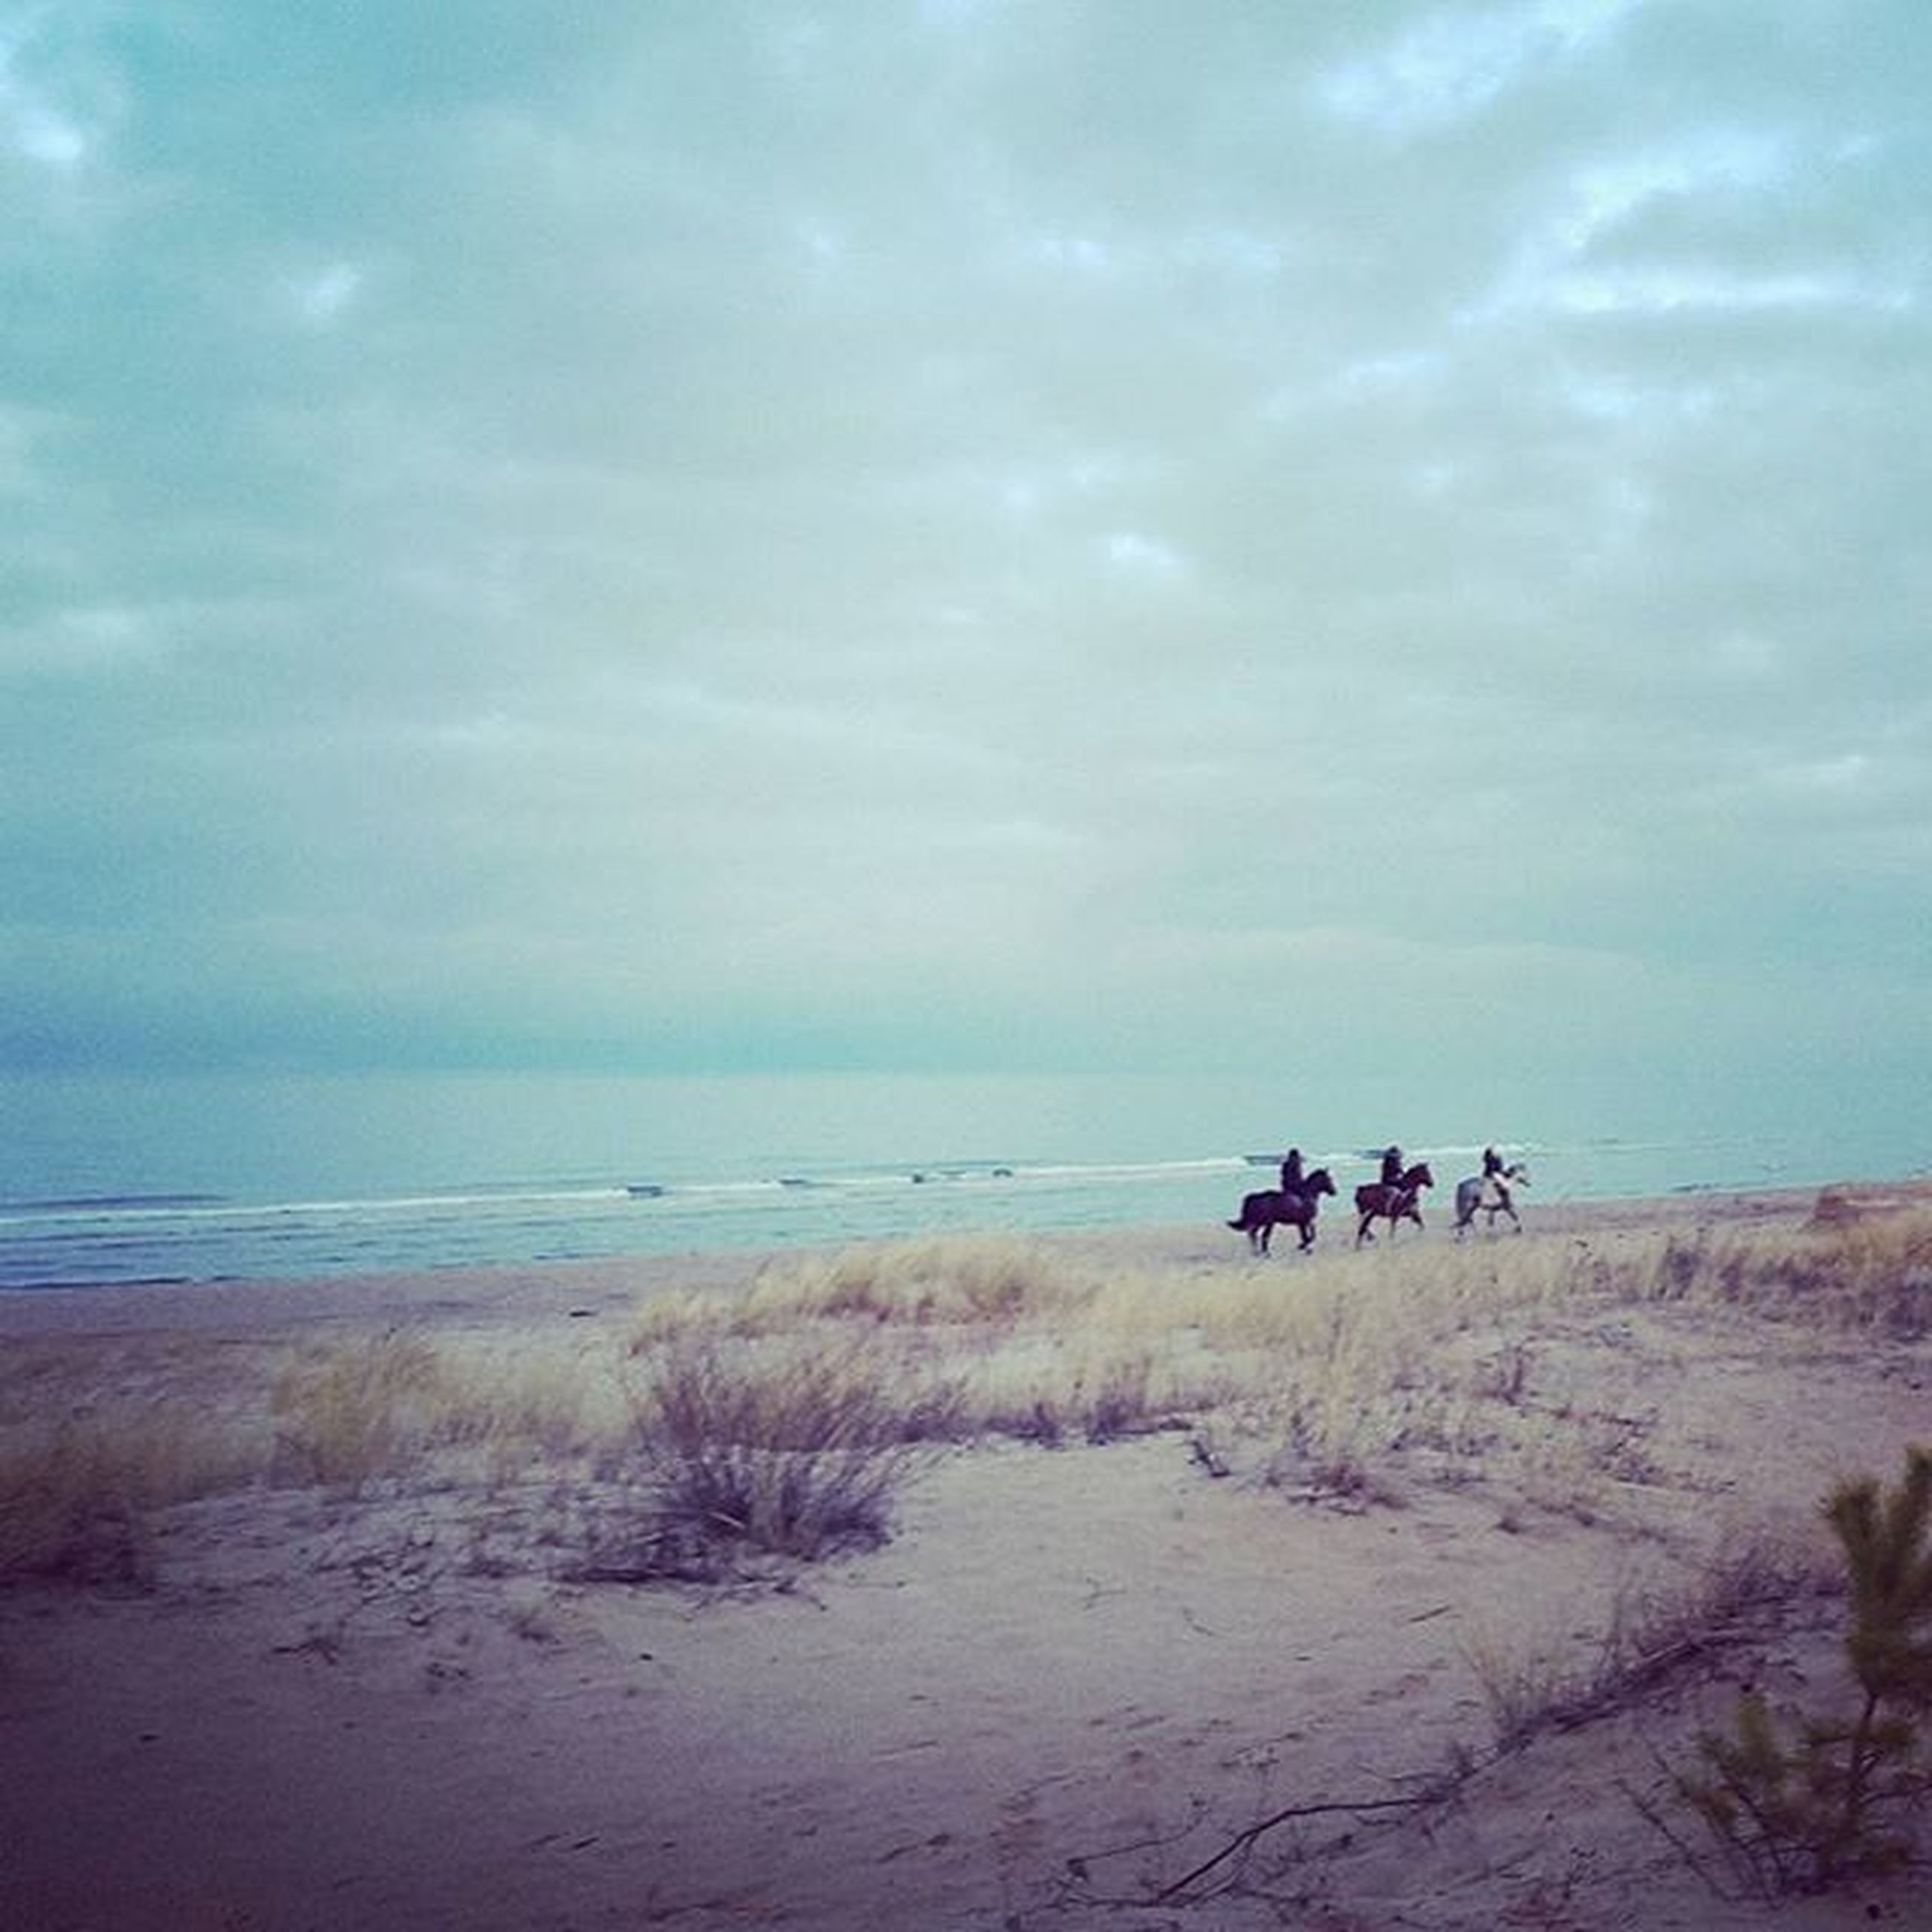 sky, beach, sea, water, tranquility, horizon over water, tranquil scene, scenics, shore, sand, beauty in nature, nature, cloud - sky, cloud, idyllic, incidental people, outdoors, men, landscape